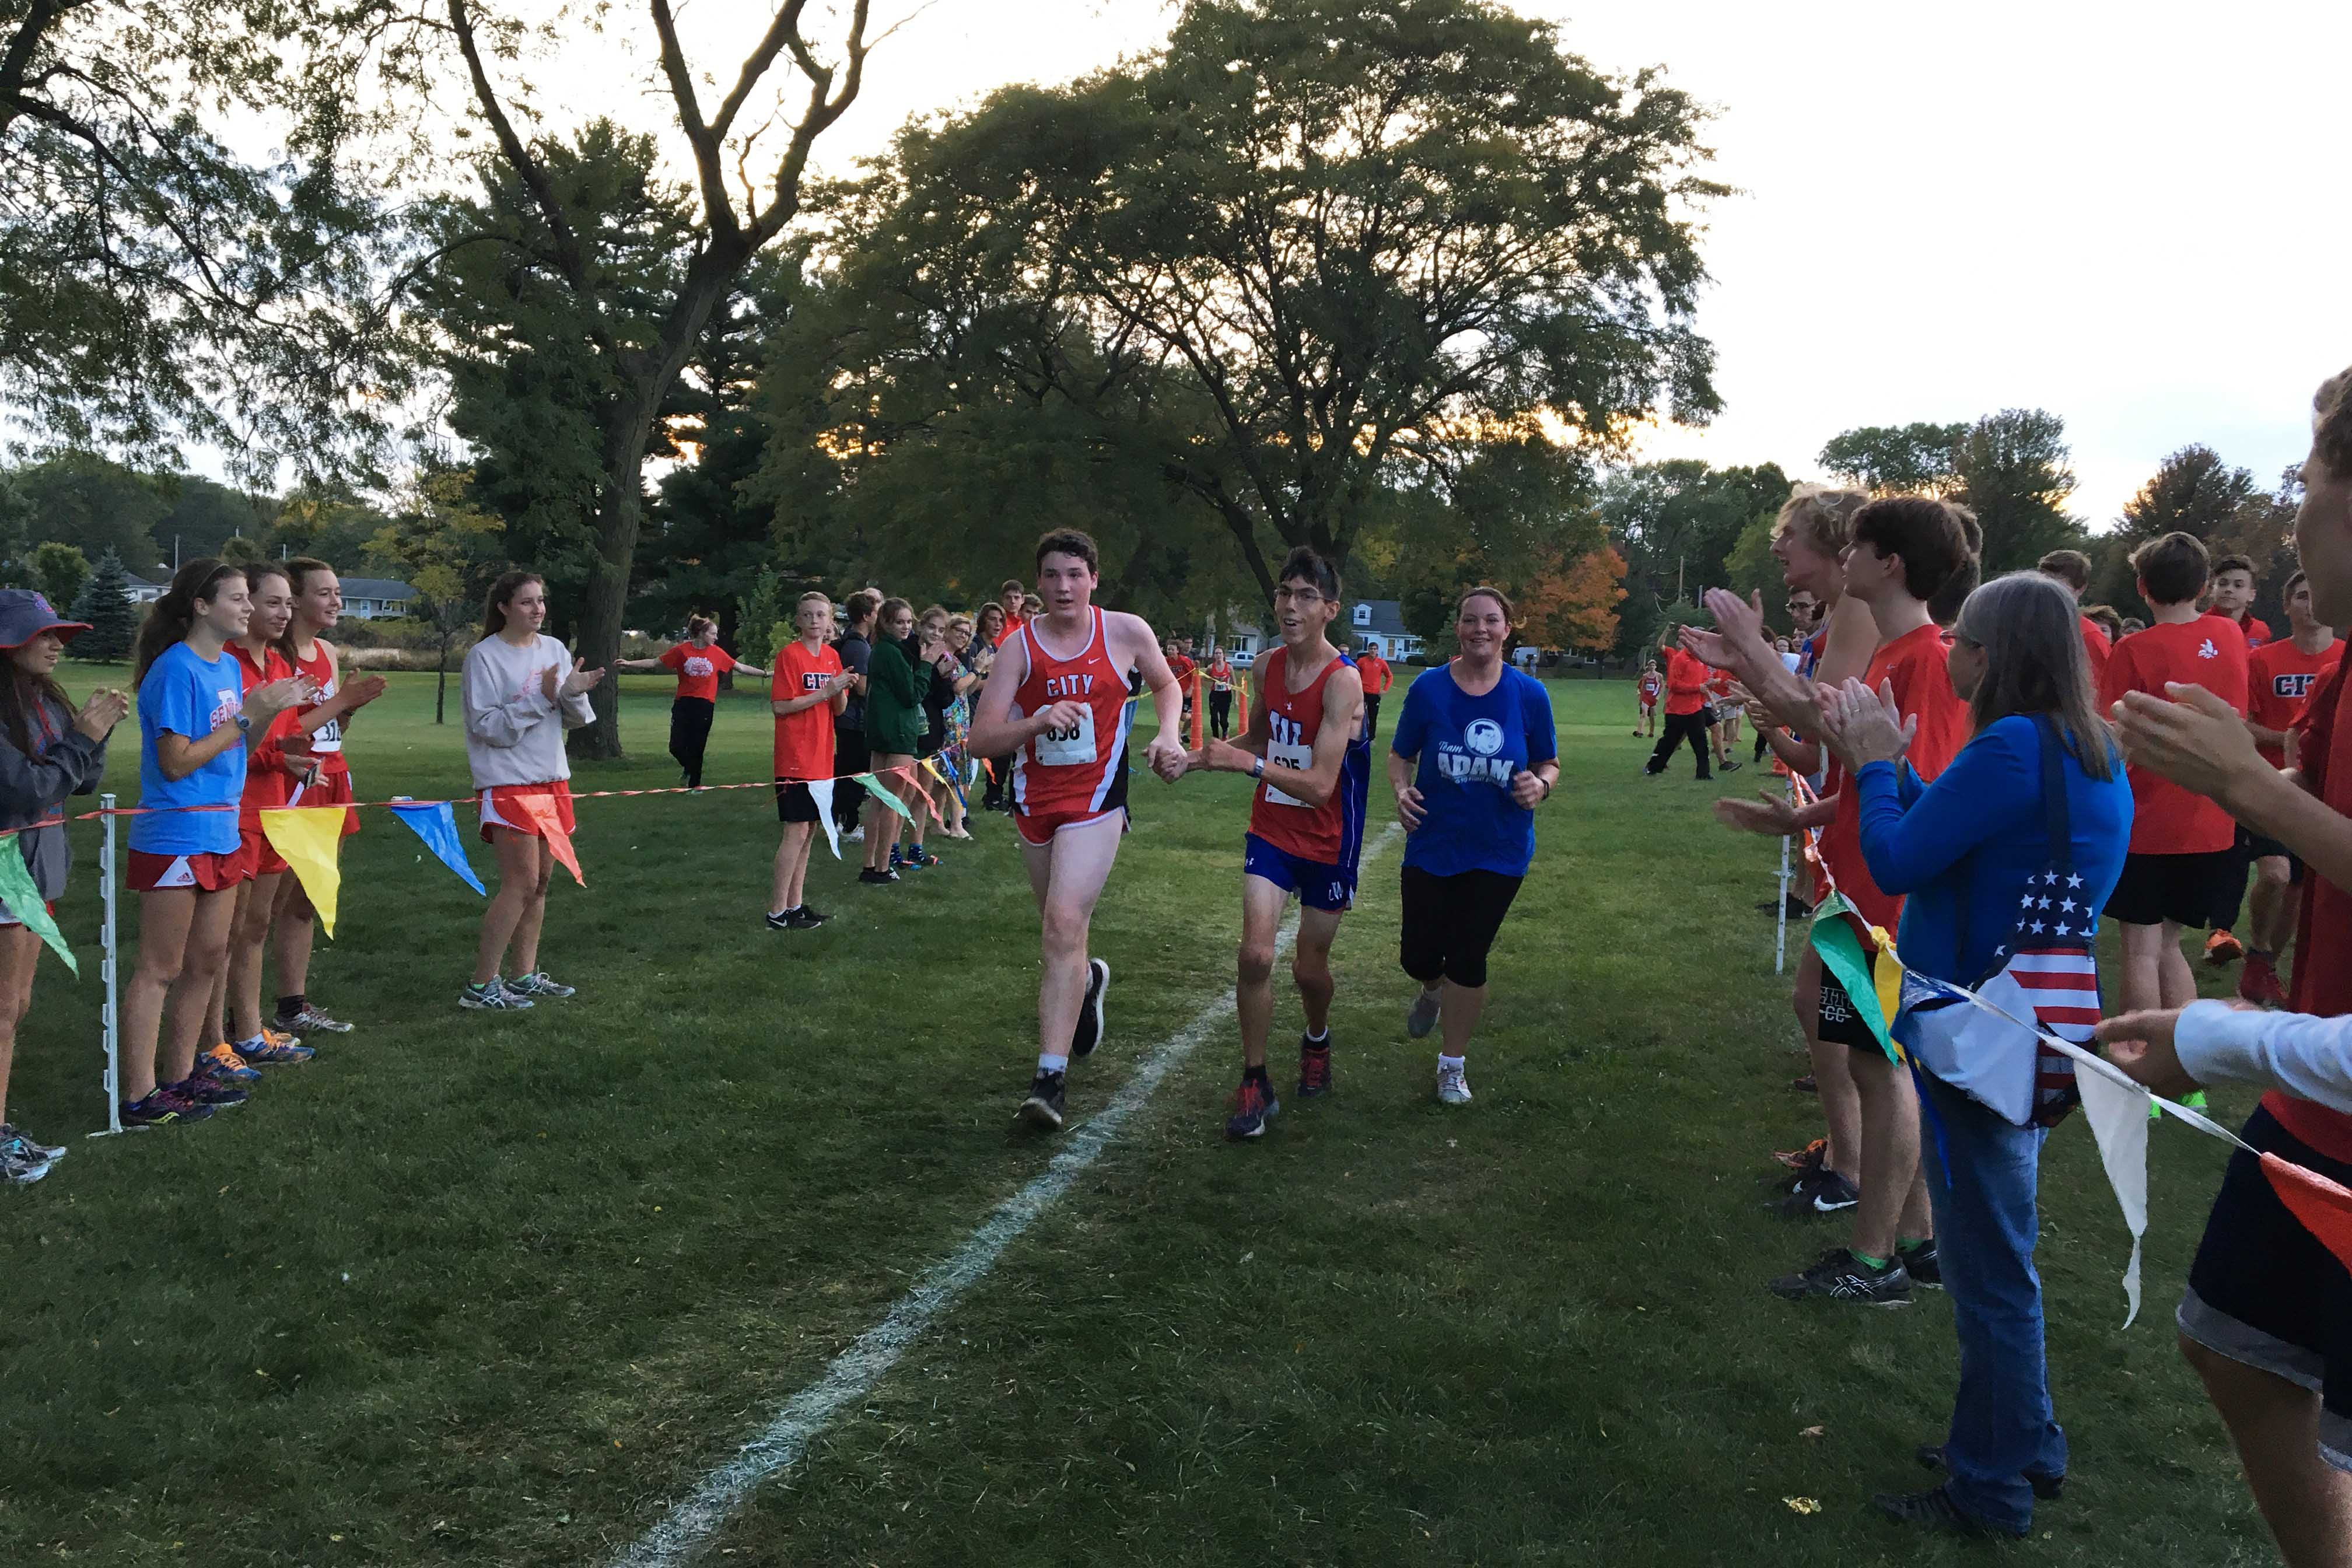 Evan+Hansen+%2719+and+Adam+Todd+%2718+finish+together+during+the+JV+Boys+Cross+Country+race+at+Noelridge+Park+on+Thursday%2C+October+6th.+